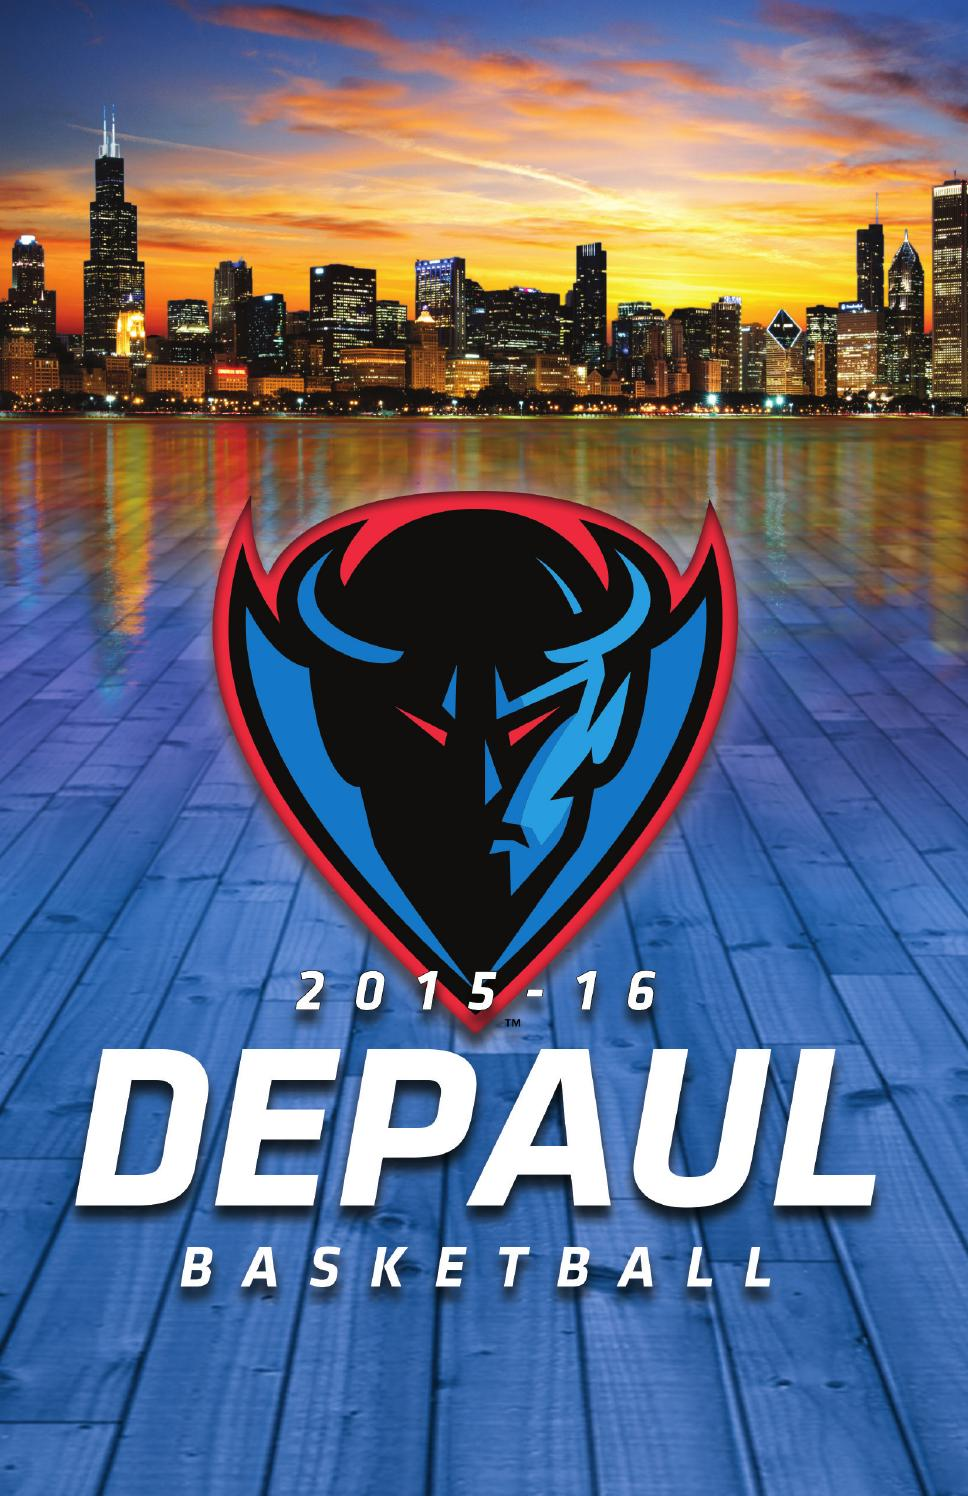 depaul basketball - photo #41